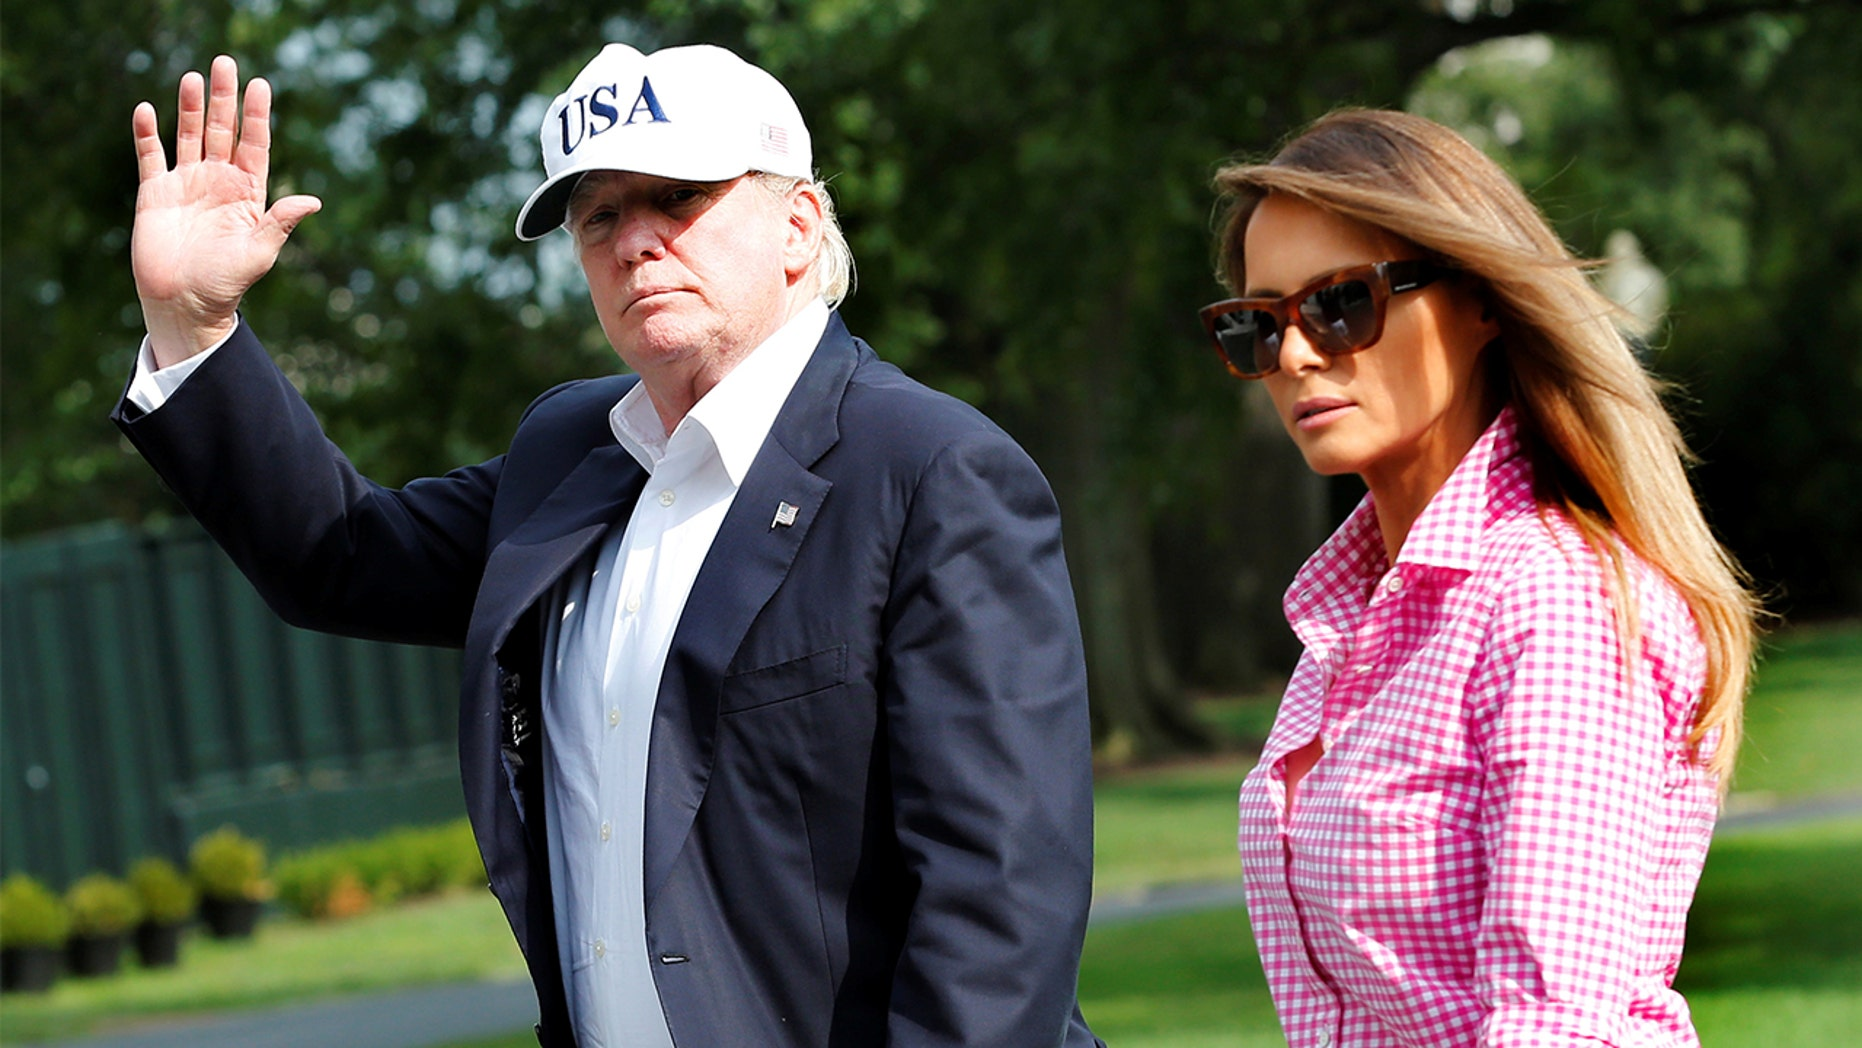 Vanity Fair left Melania Trump off the International Best Dressed List and some are accusing the magazine of having political motives